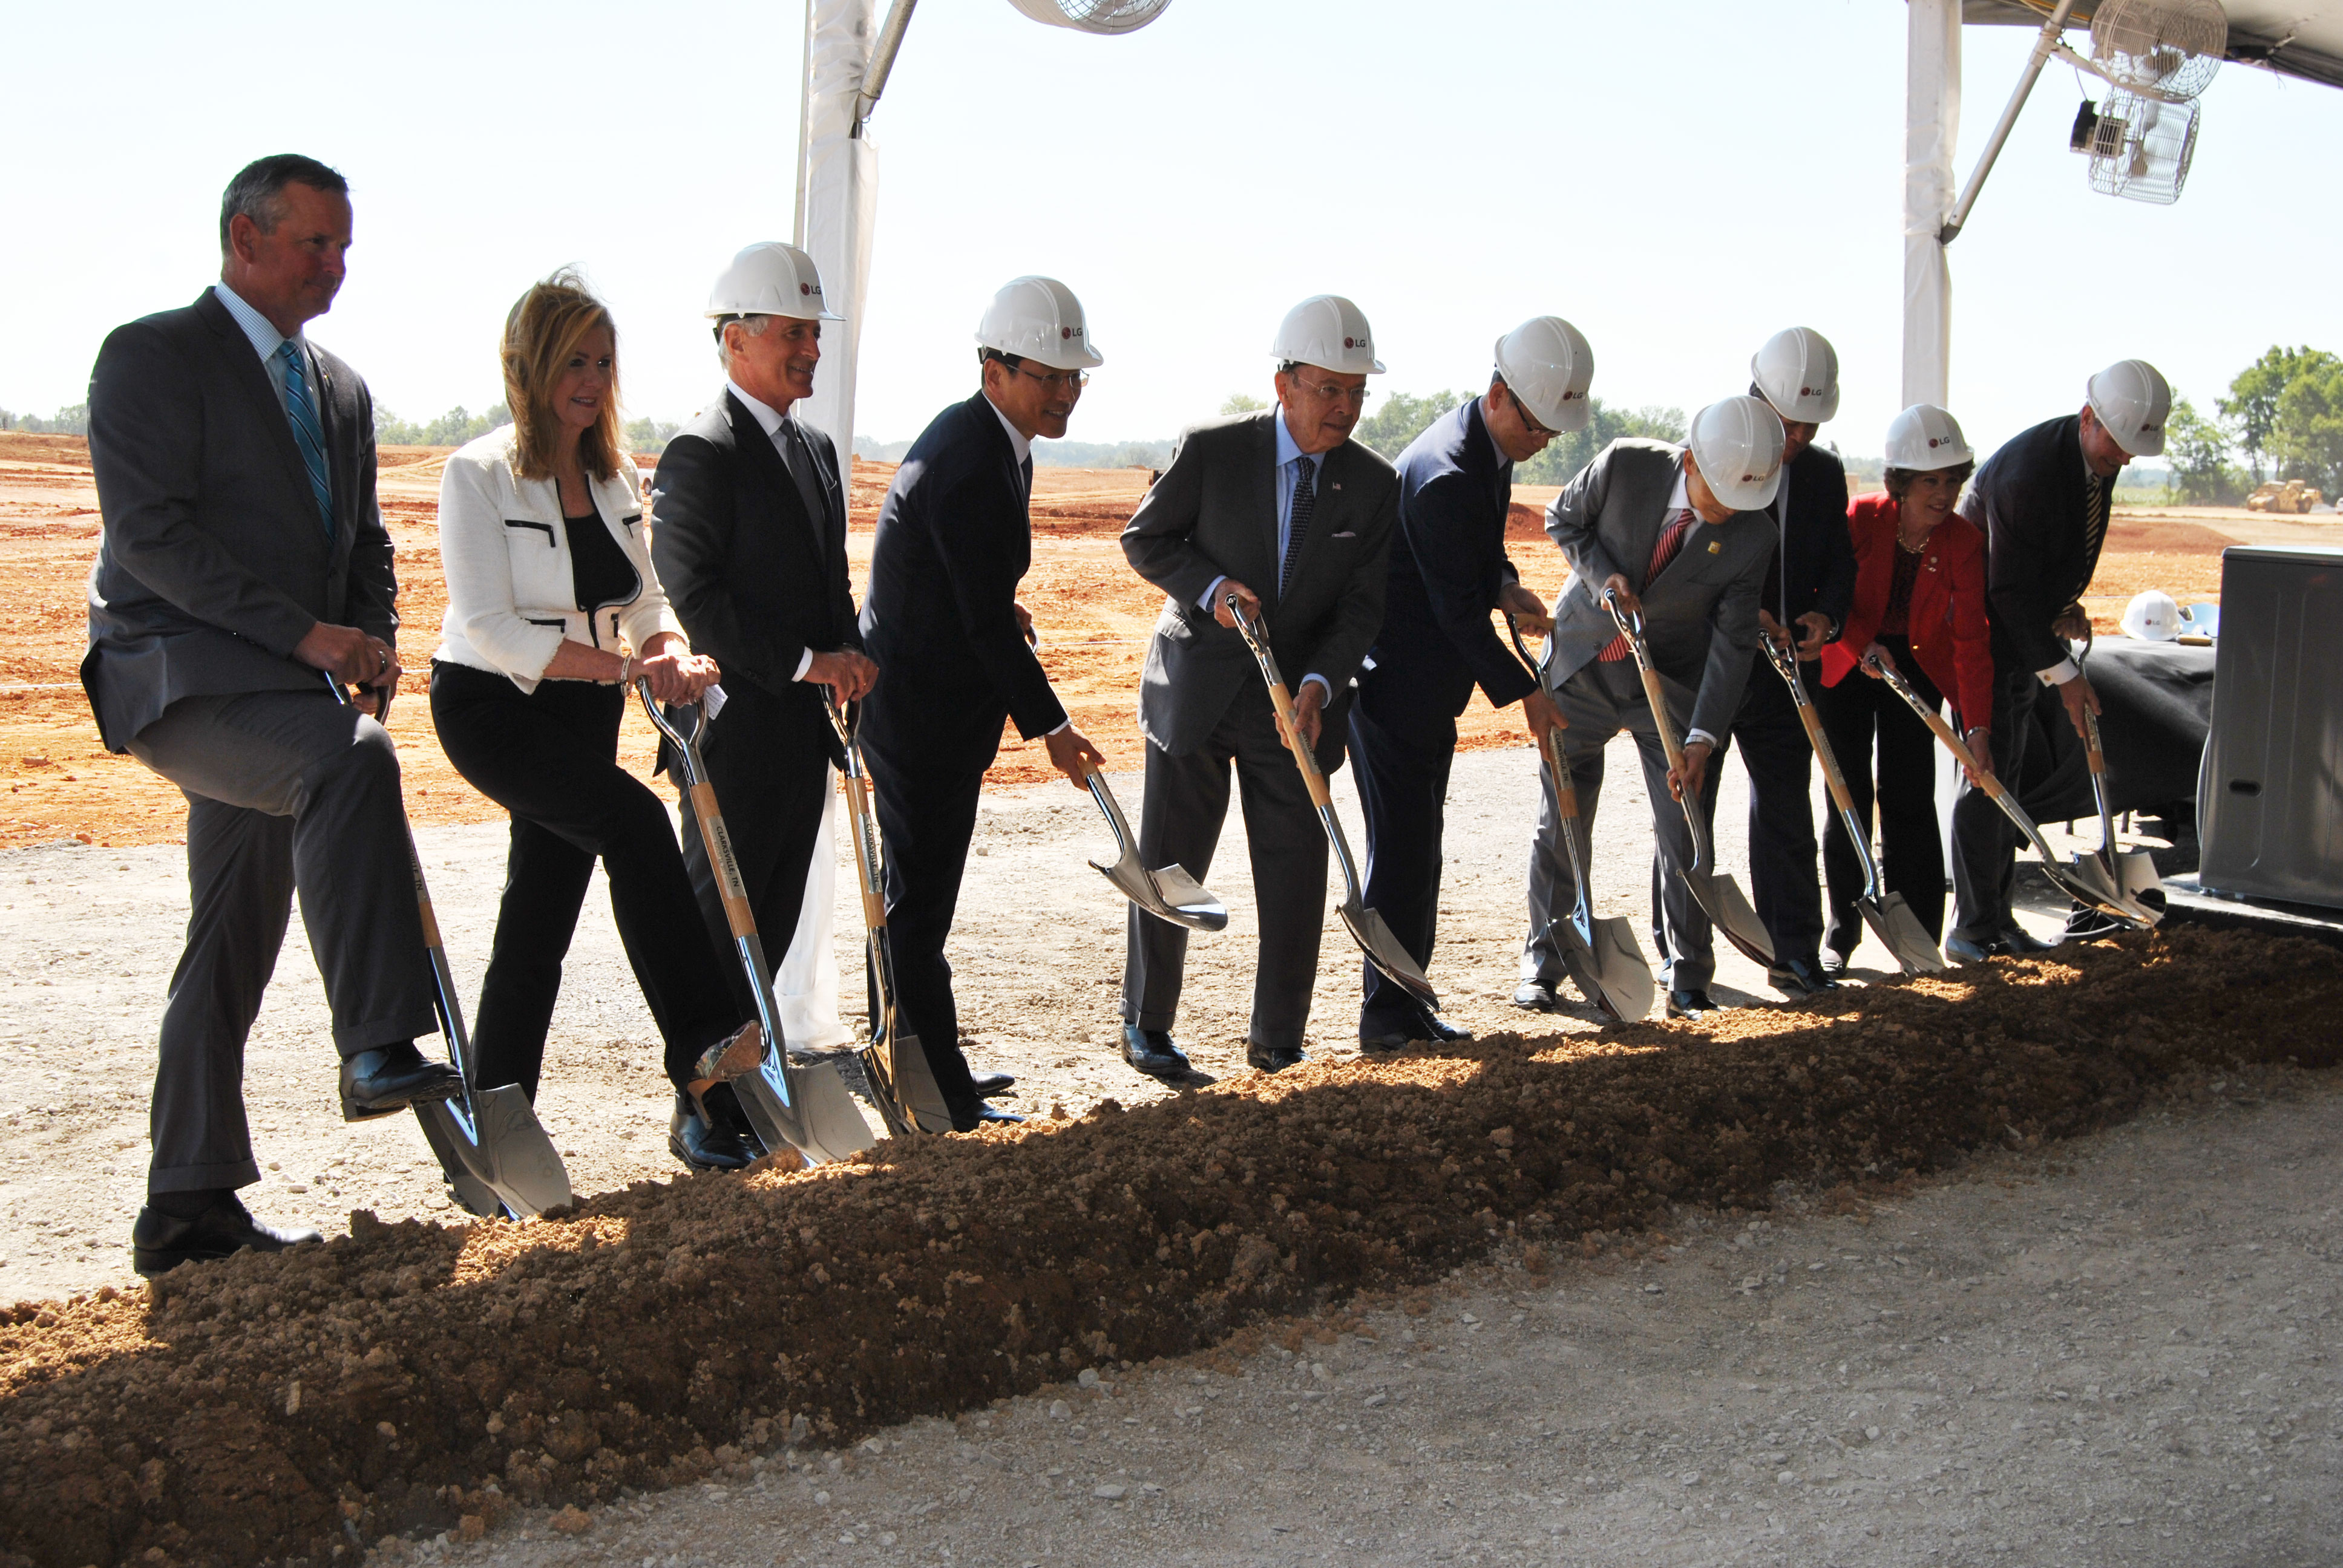 LG breaks ground on $250M appliance plant in Tennessee